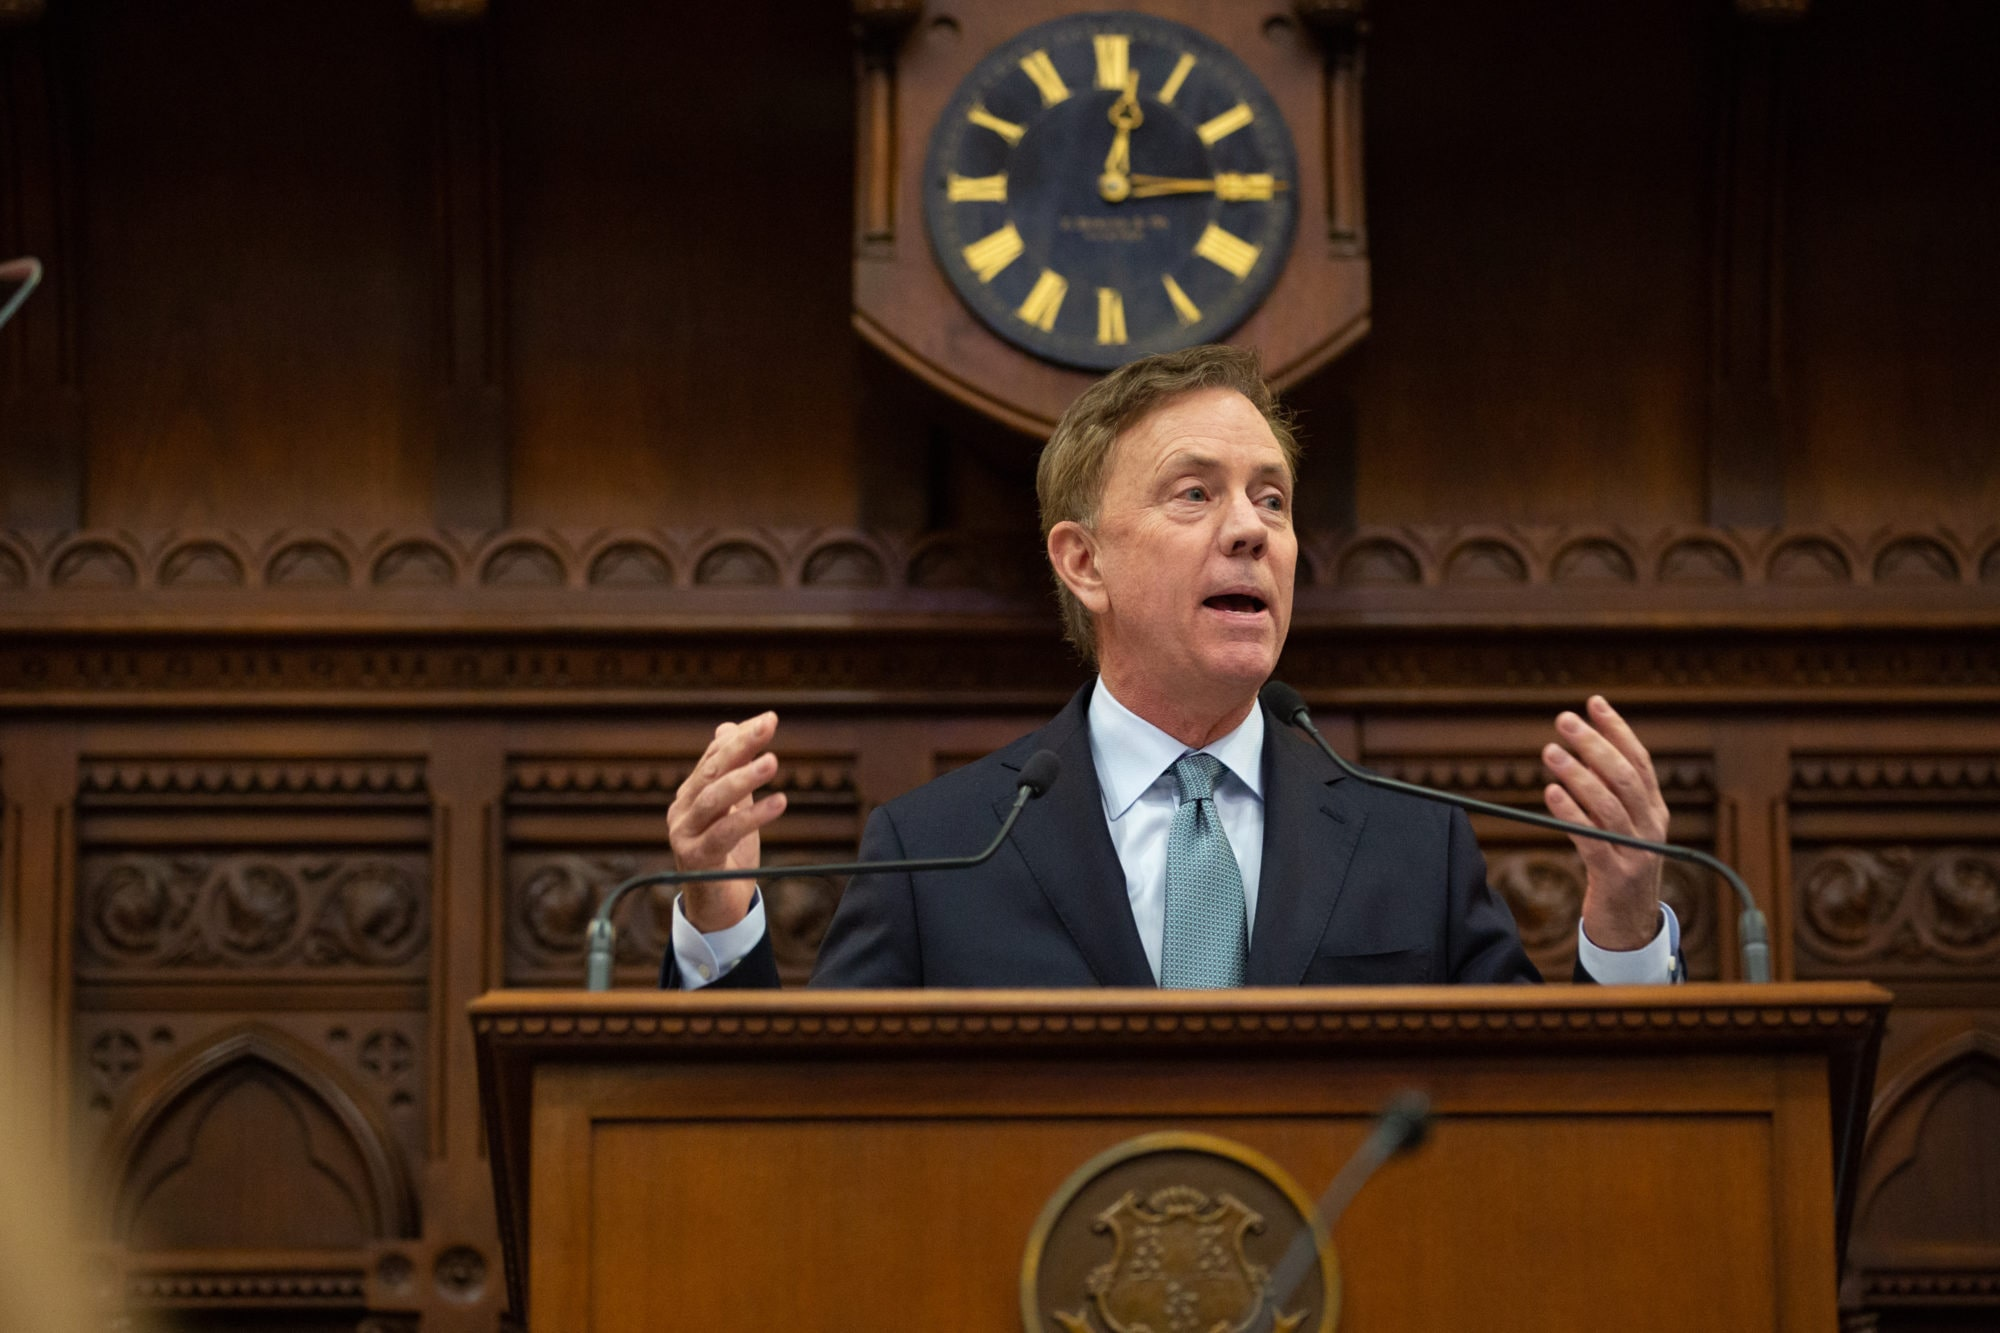 Connecticut's legacy of debt weighed heavy on Lamont's first budget